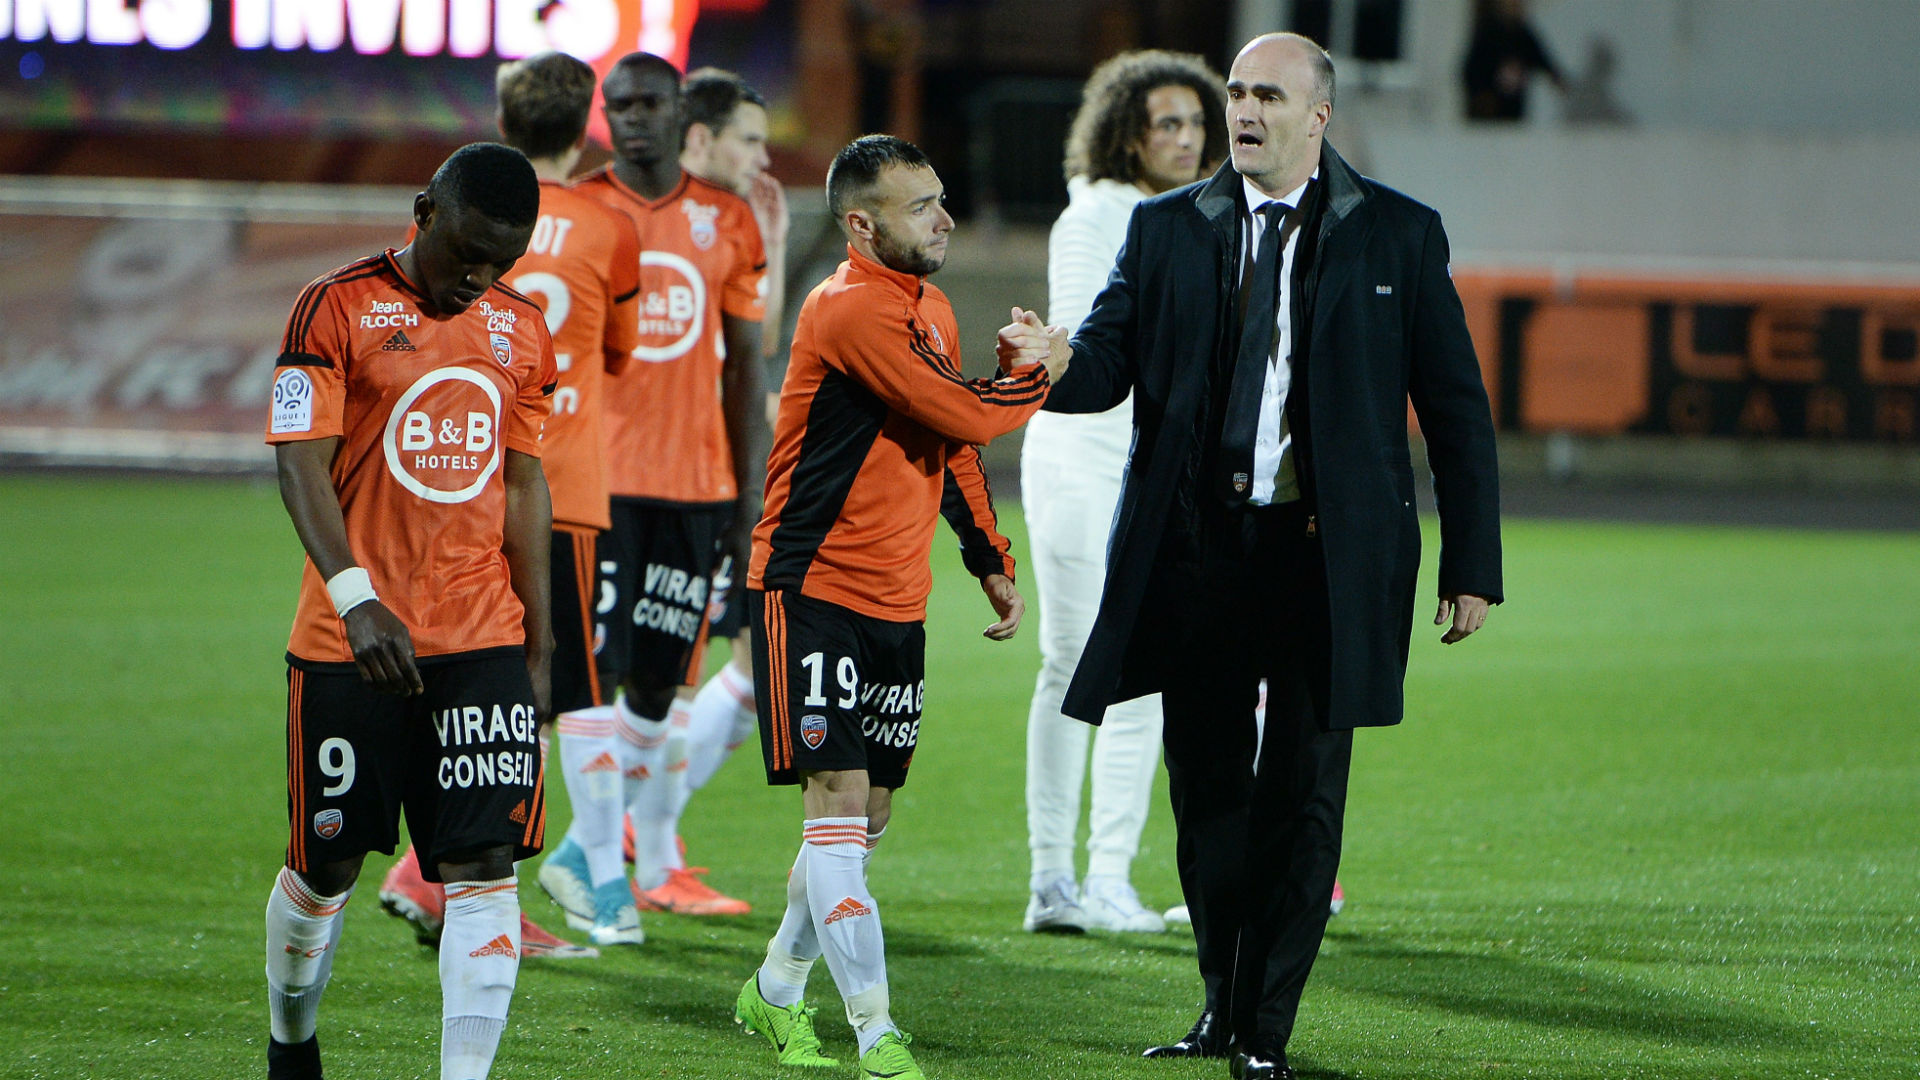 Monaco finish season in style, OM takes Europa League spot